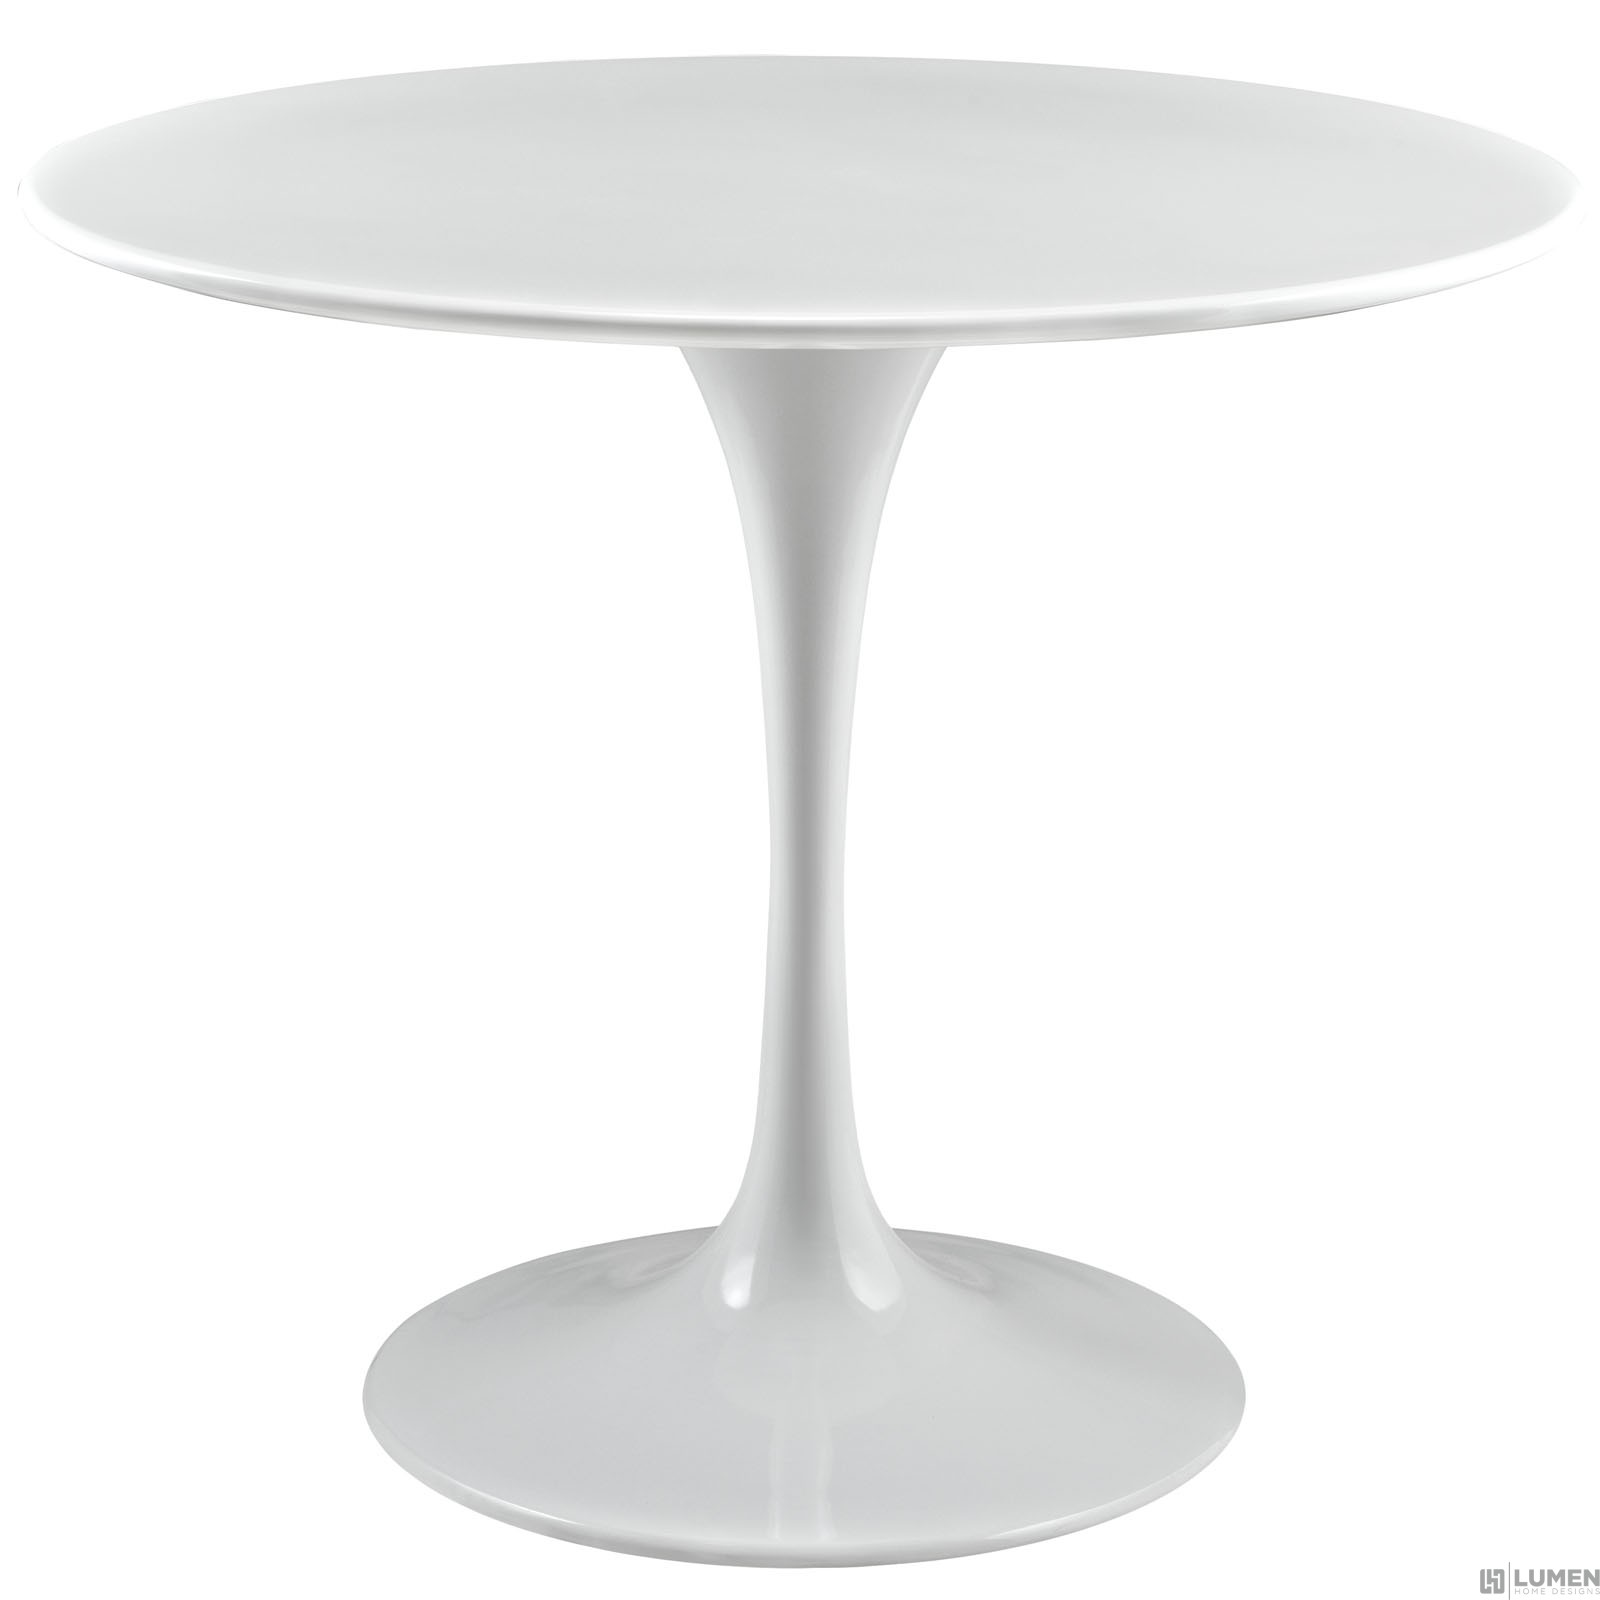 LHD-1116-WHI-Dining-Table